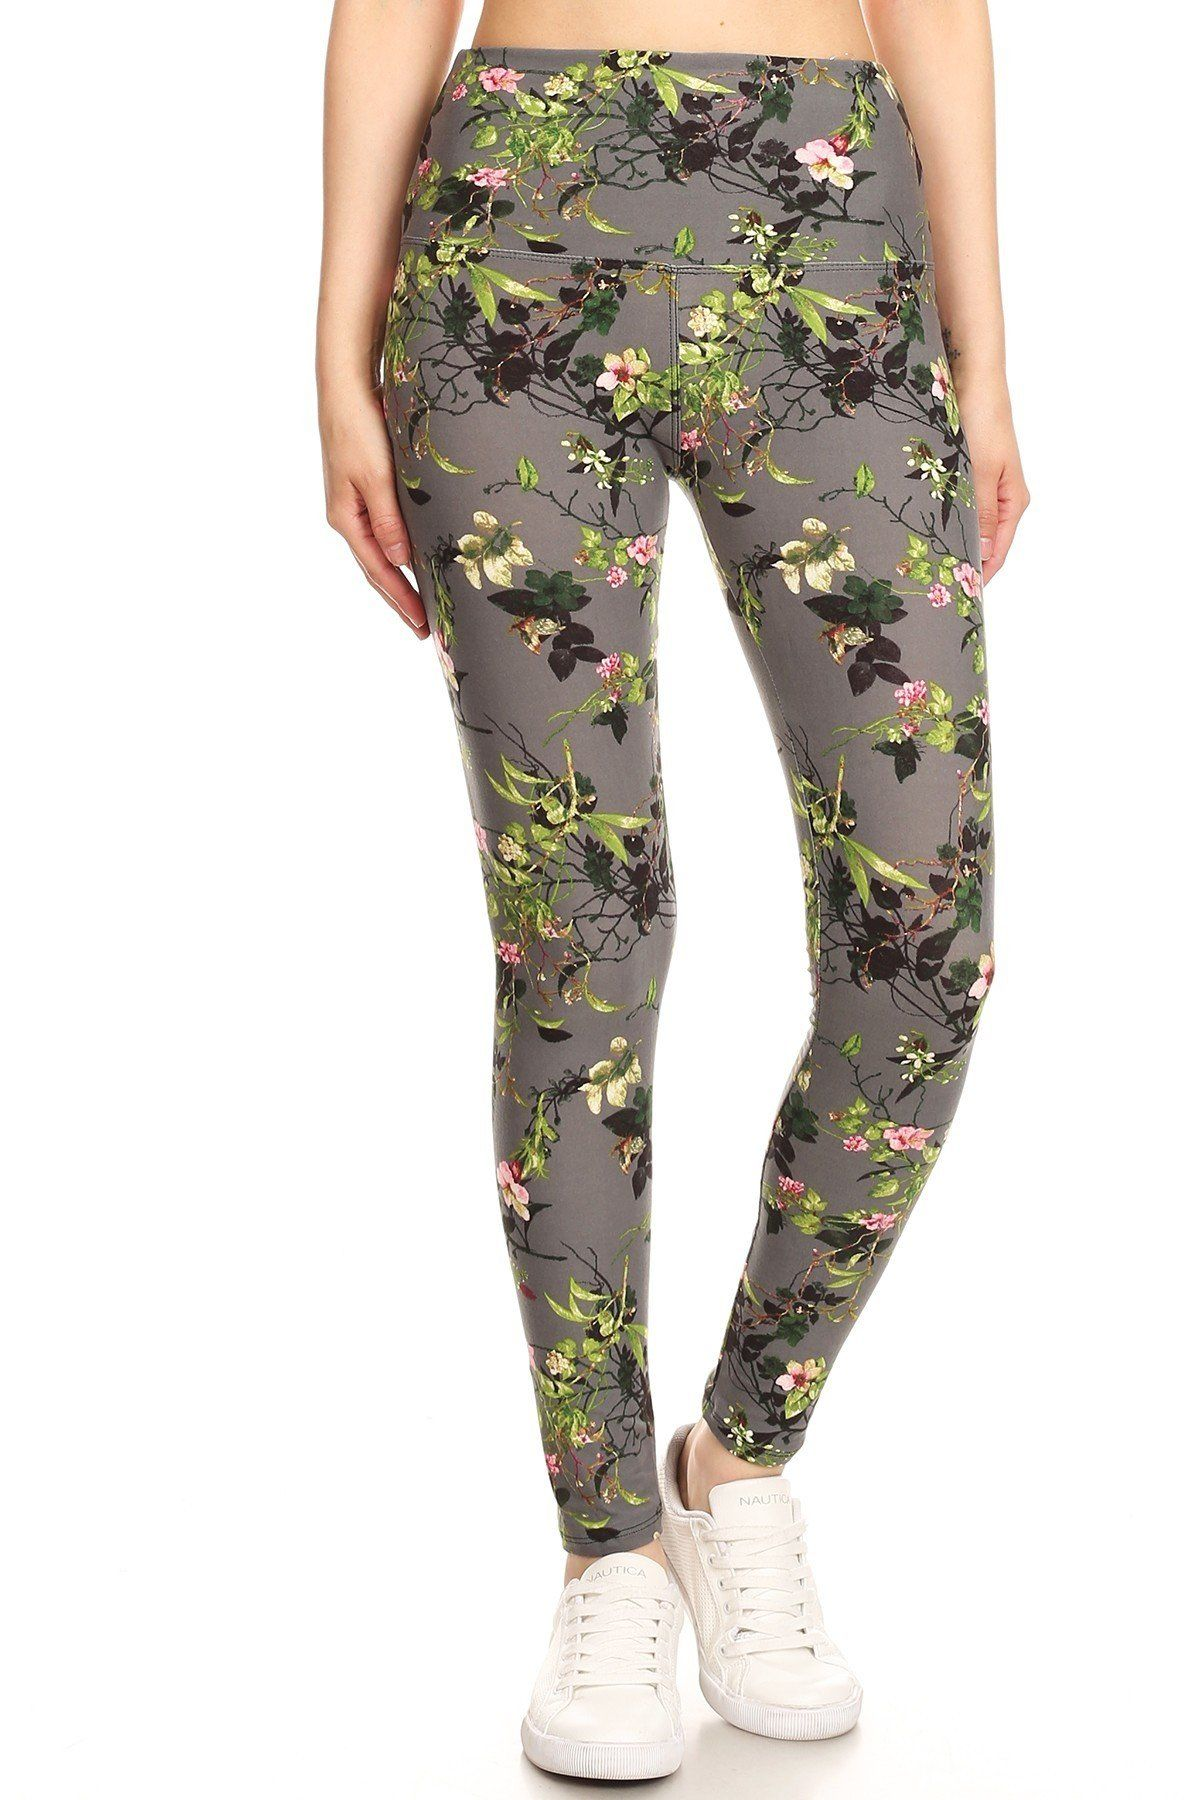 5-inch Long Yoga Style Banded Lined Floral Printed Knit Legging With High Waist